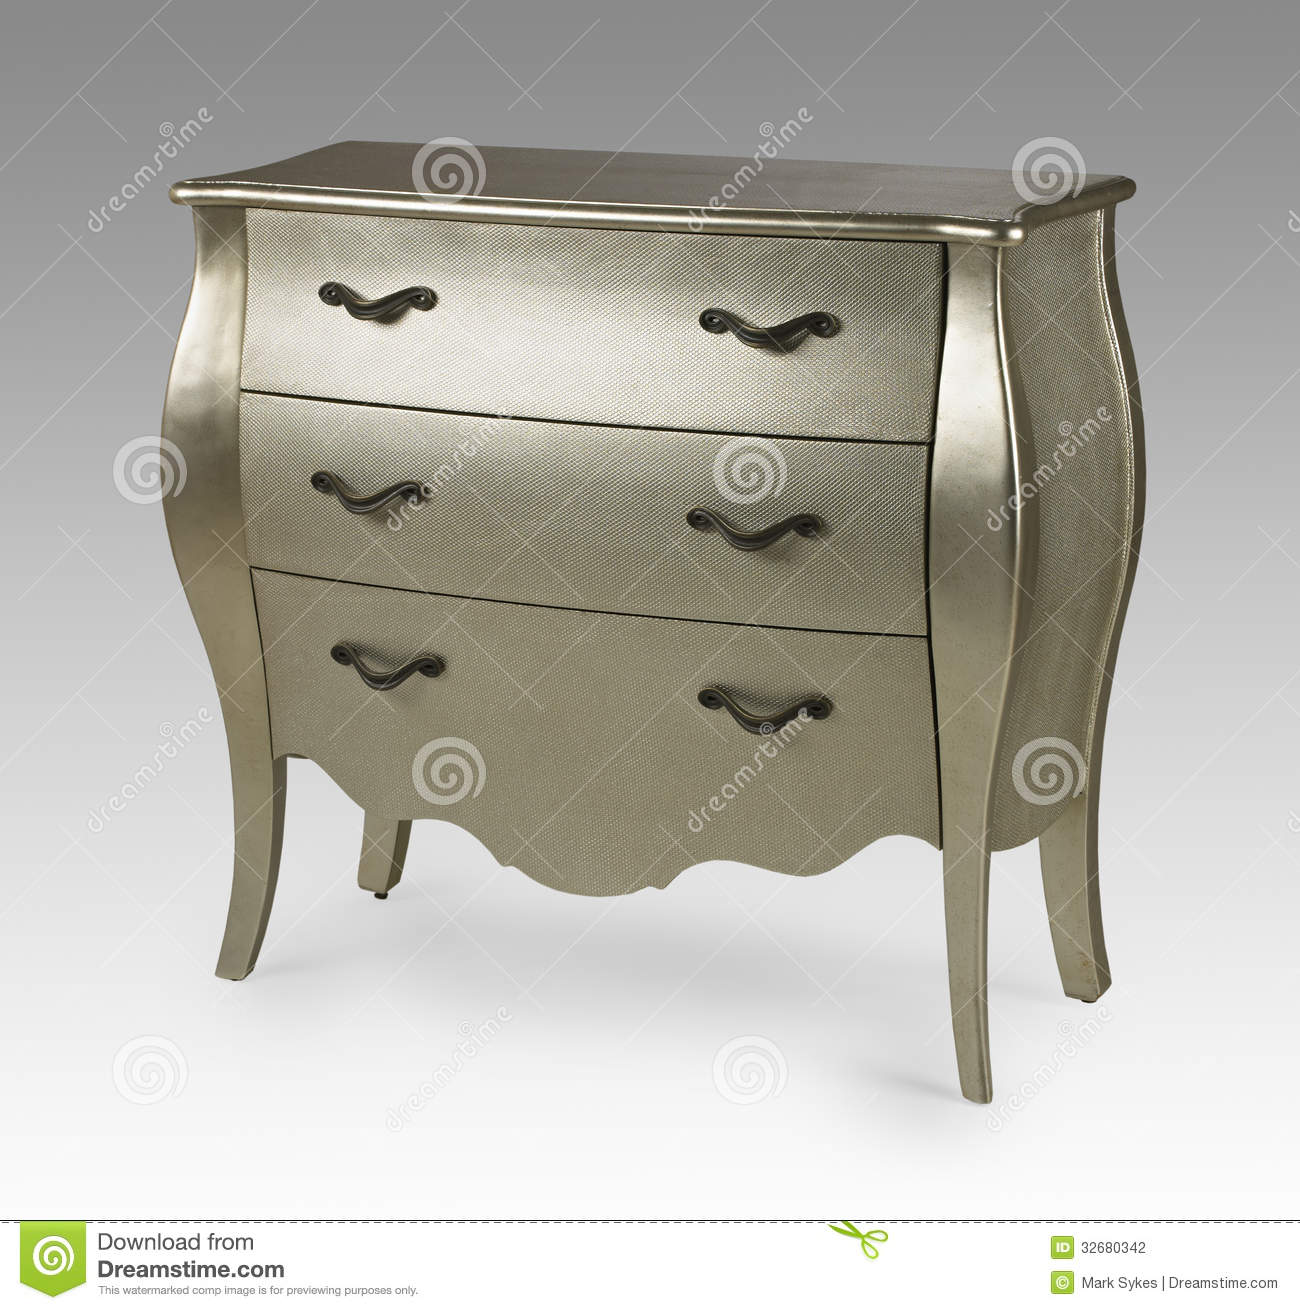 Silver Antique Ornate Chest Of Drawers Stock Photo Image Of Cabinet Drawers 32680342